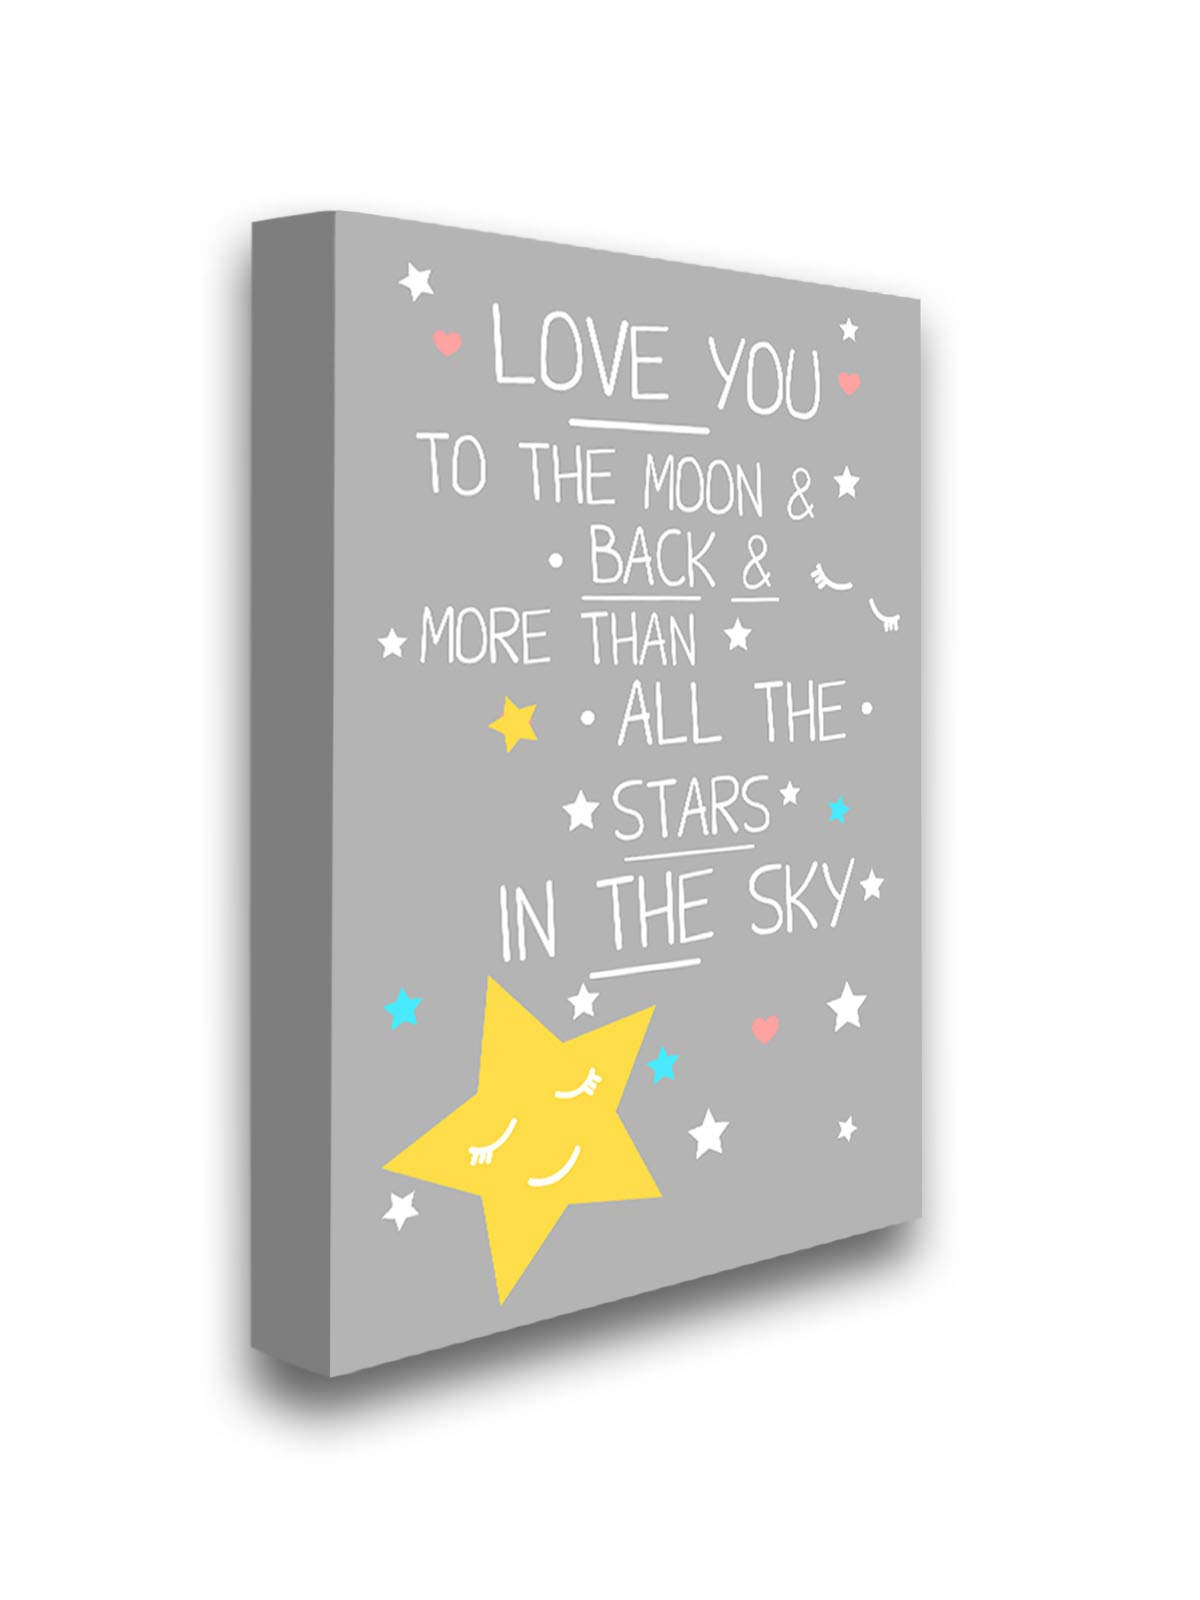 Pekatees Love You to The Moon & Back More Than All The Stars in The Sky Framed Picture Cute Quotes Baby Kids Room Newborn Baby Gifts 32'' x 40'' NO Frame